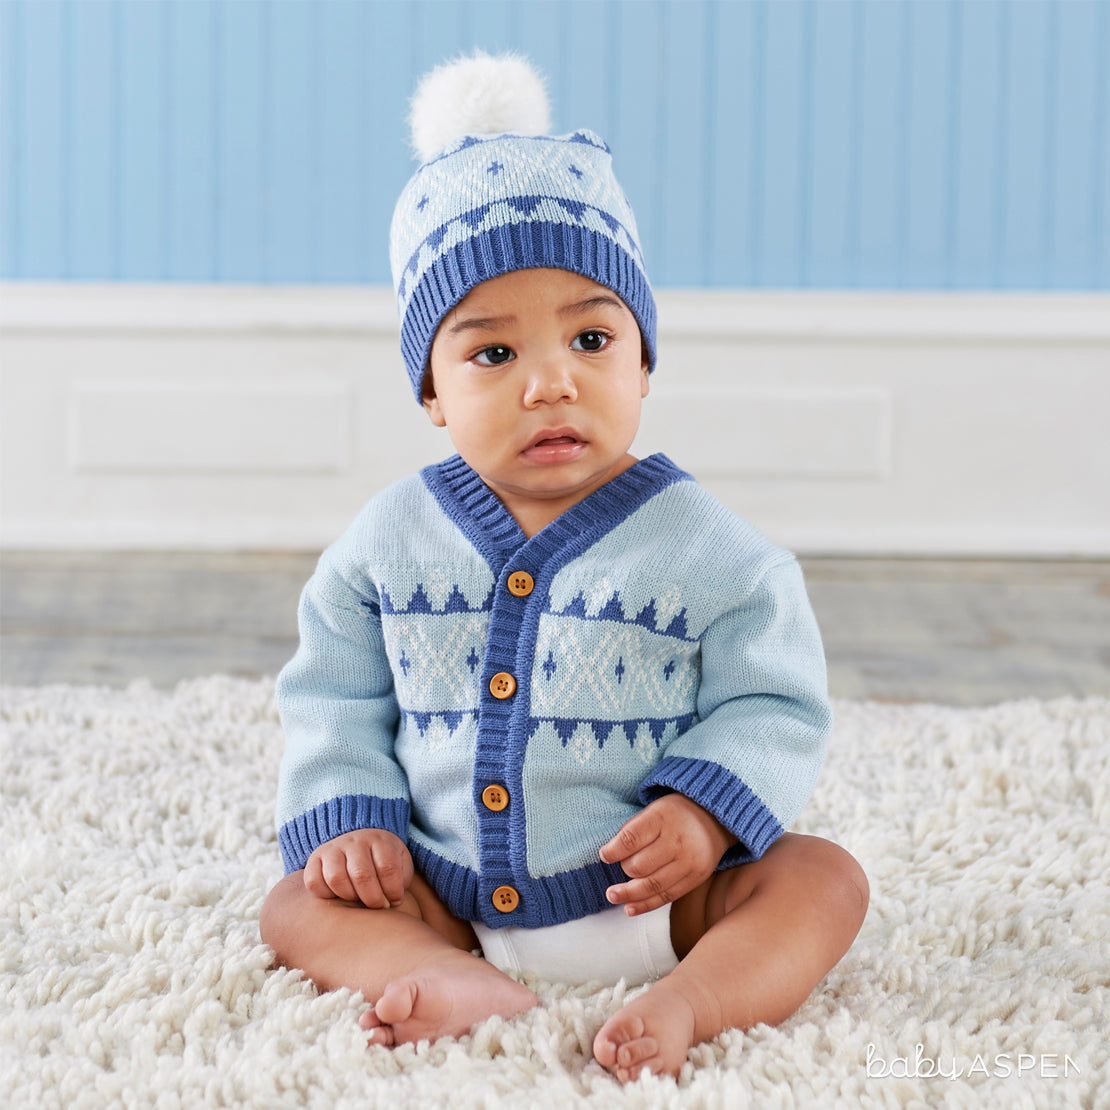 Blue Fair Isle Cardigan and Pom Pom Hat | Holiday Gift Guide: Top Baby Picks for 2017 | Baby Aspen